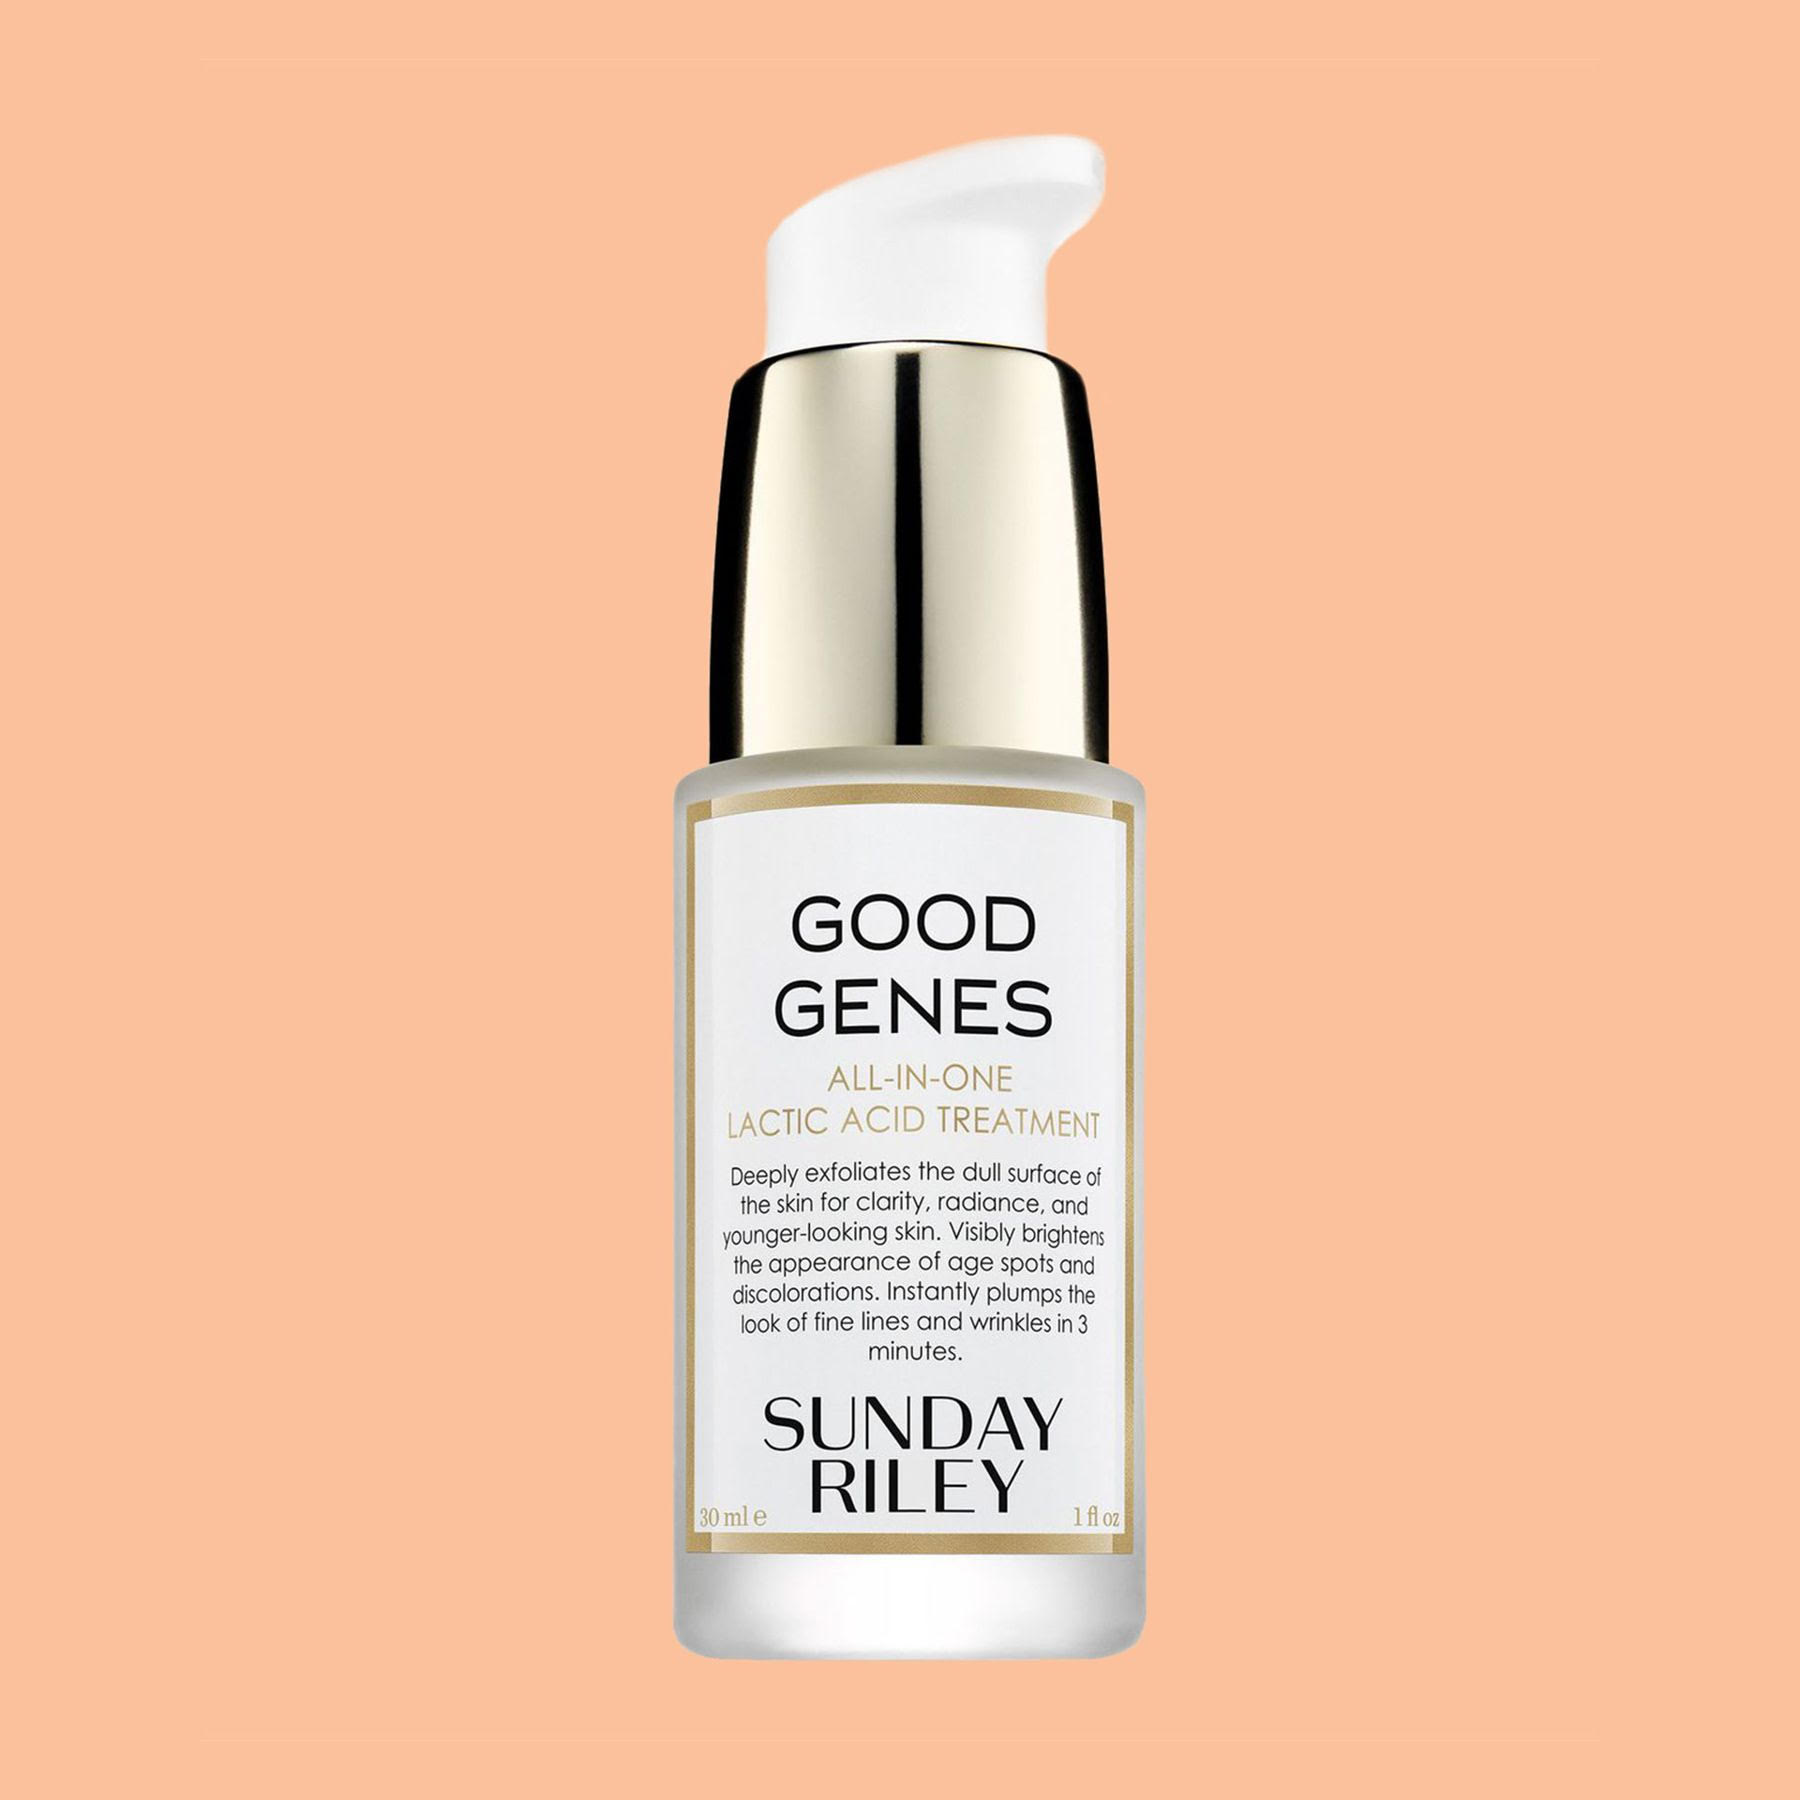 10 Skincare Must Haves To Revive Your Skin After A Dry Winter Viva Acne Lotion 30ml Renee Rouleau Moisture Protecting Cleanser